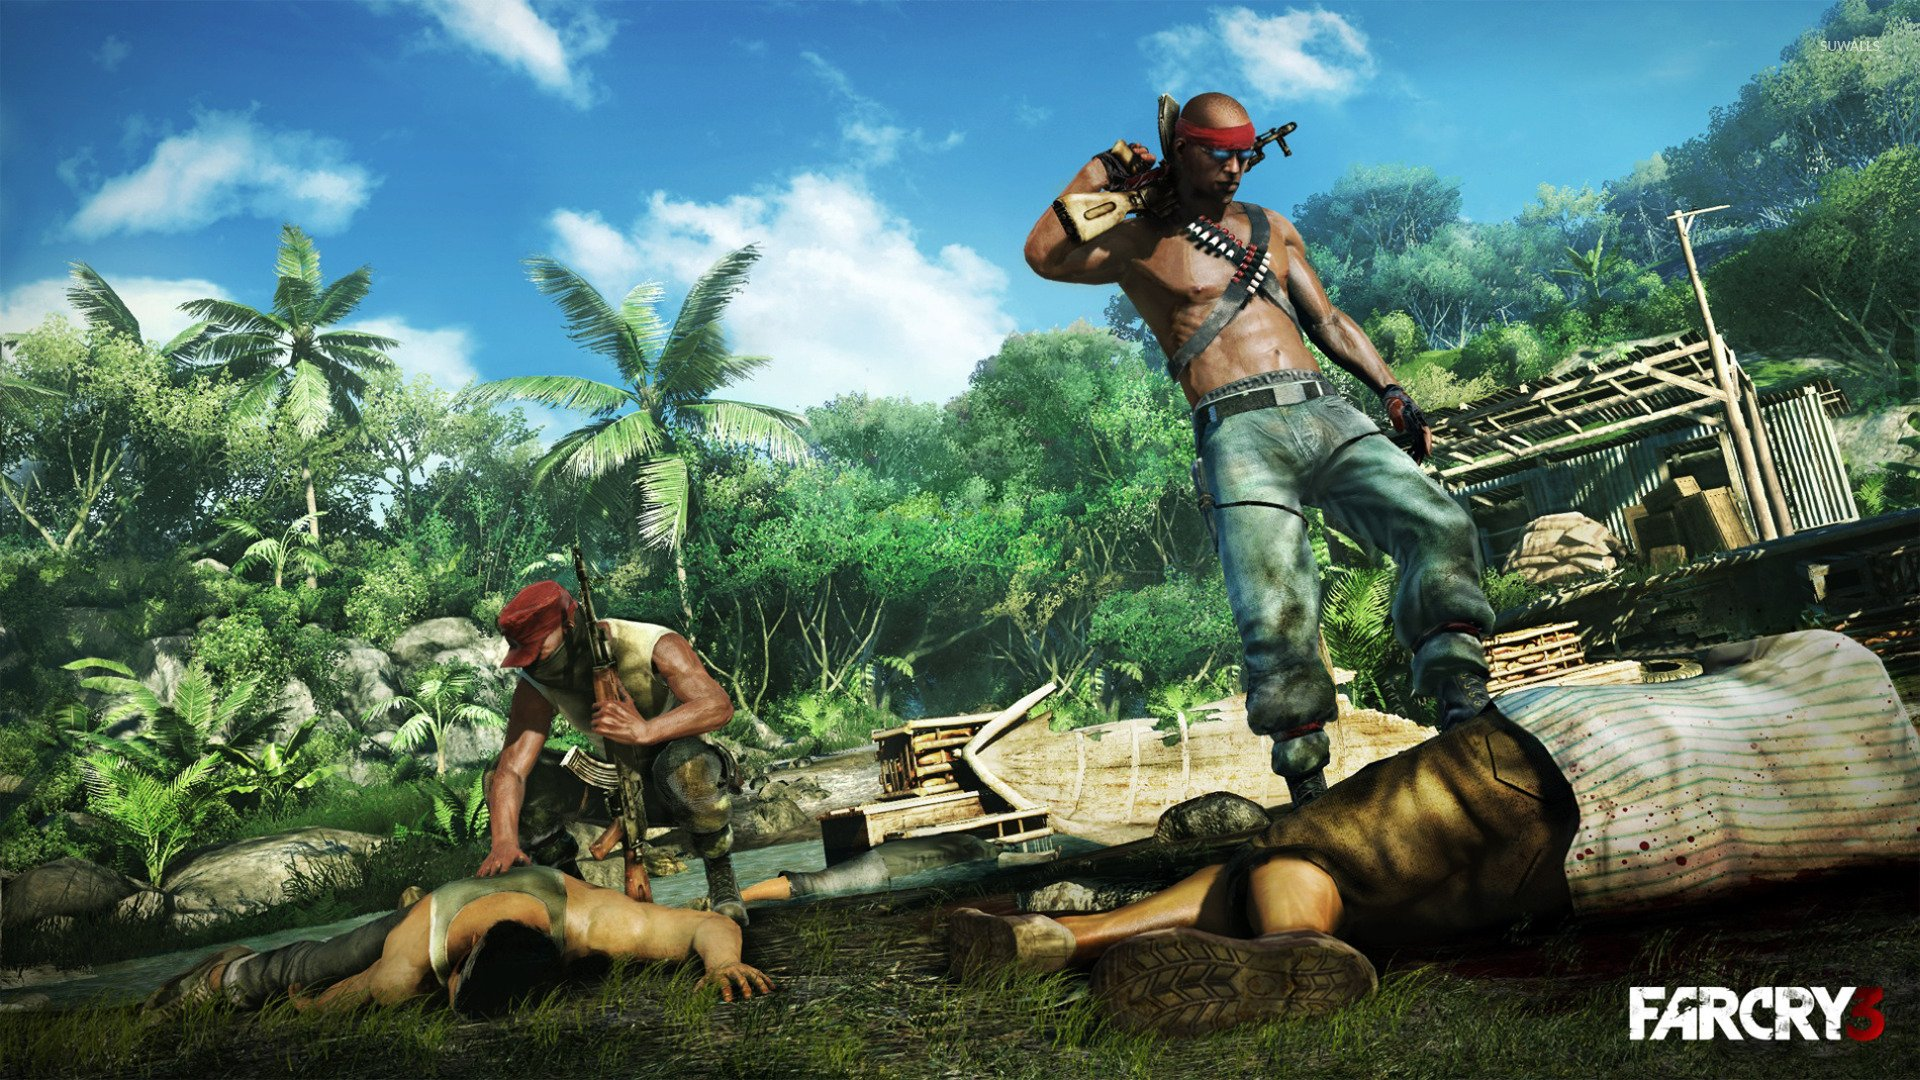 Free Download Far Cry 3 Wallpaper 1920x1080 1920x1080 For Your